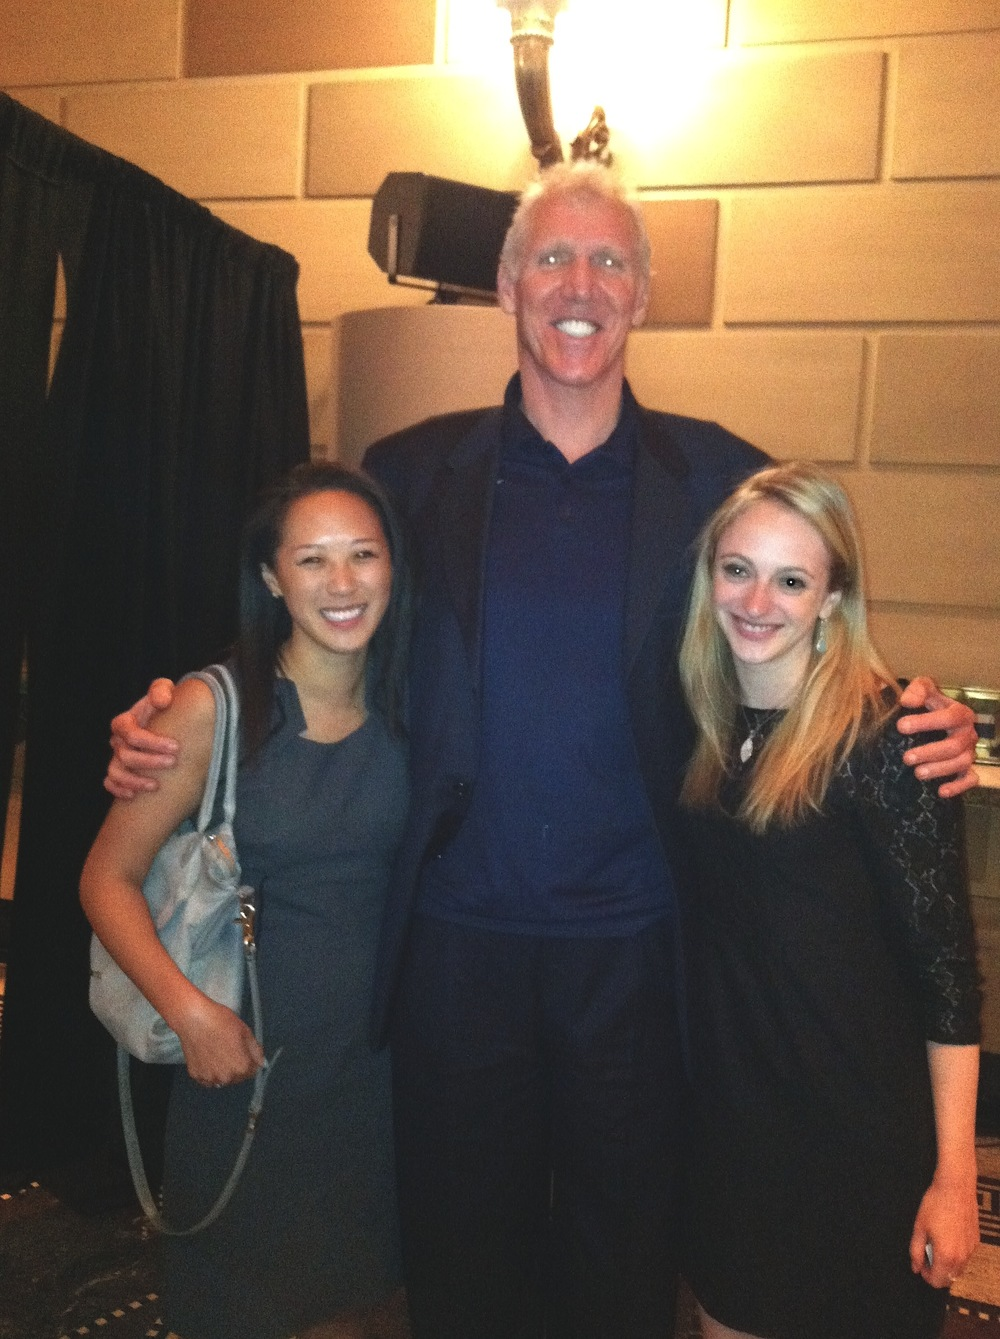 Jill and me with our pal Bill Walton...